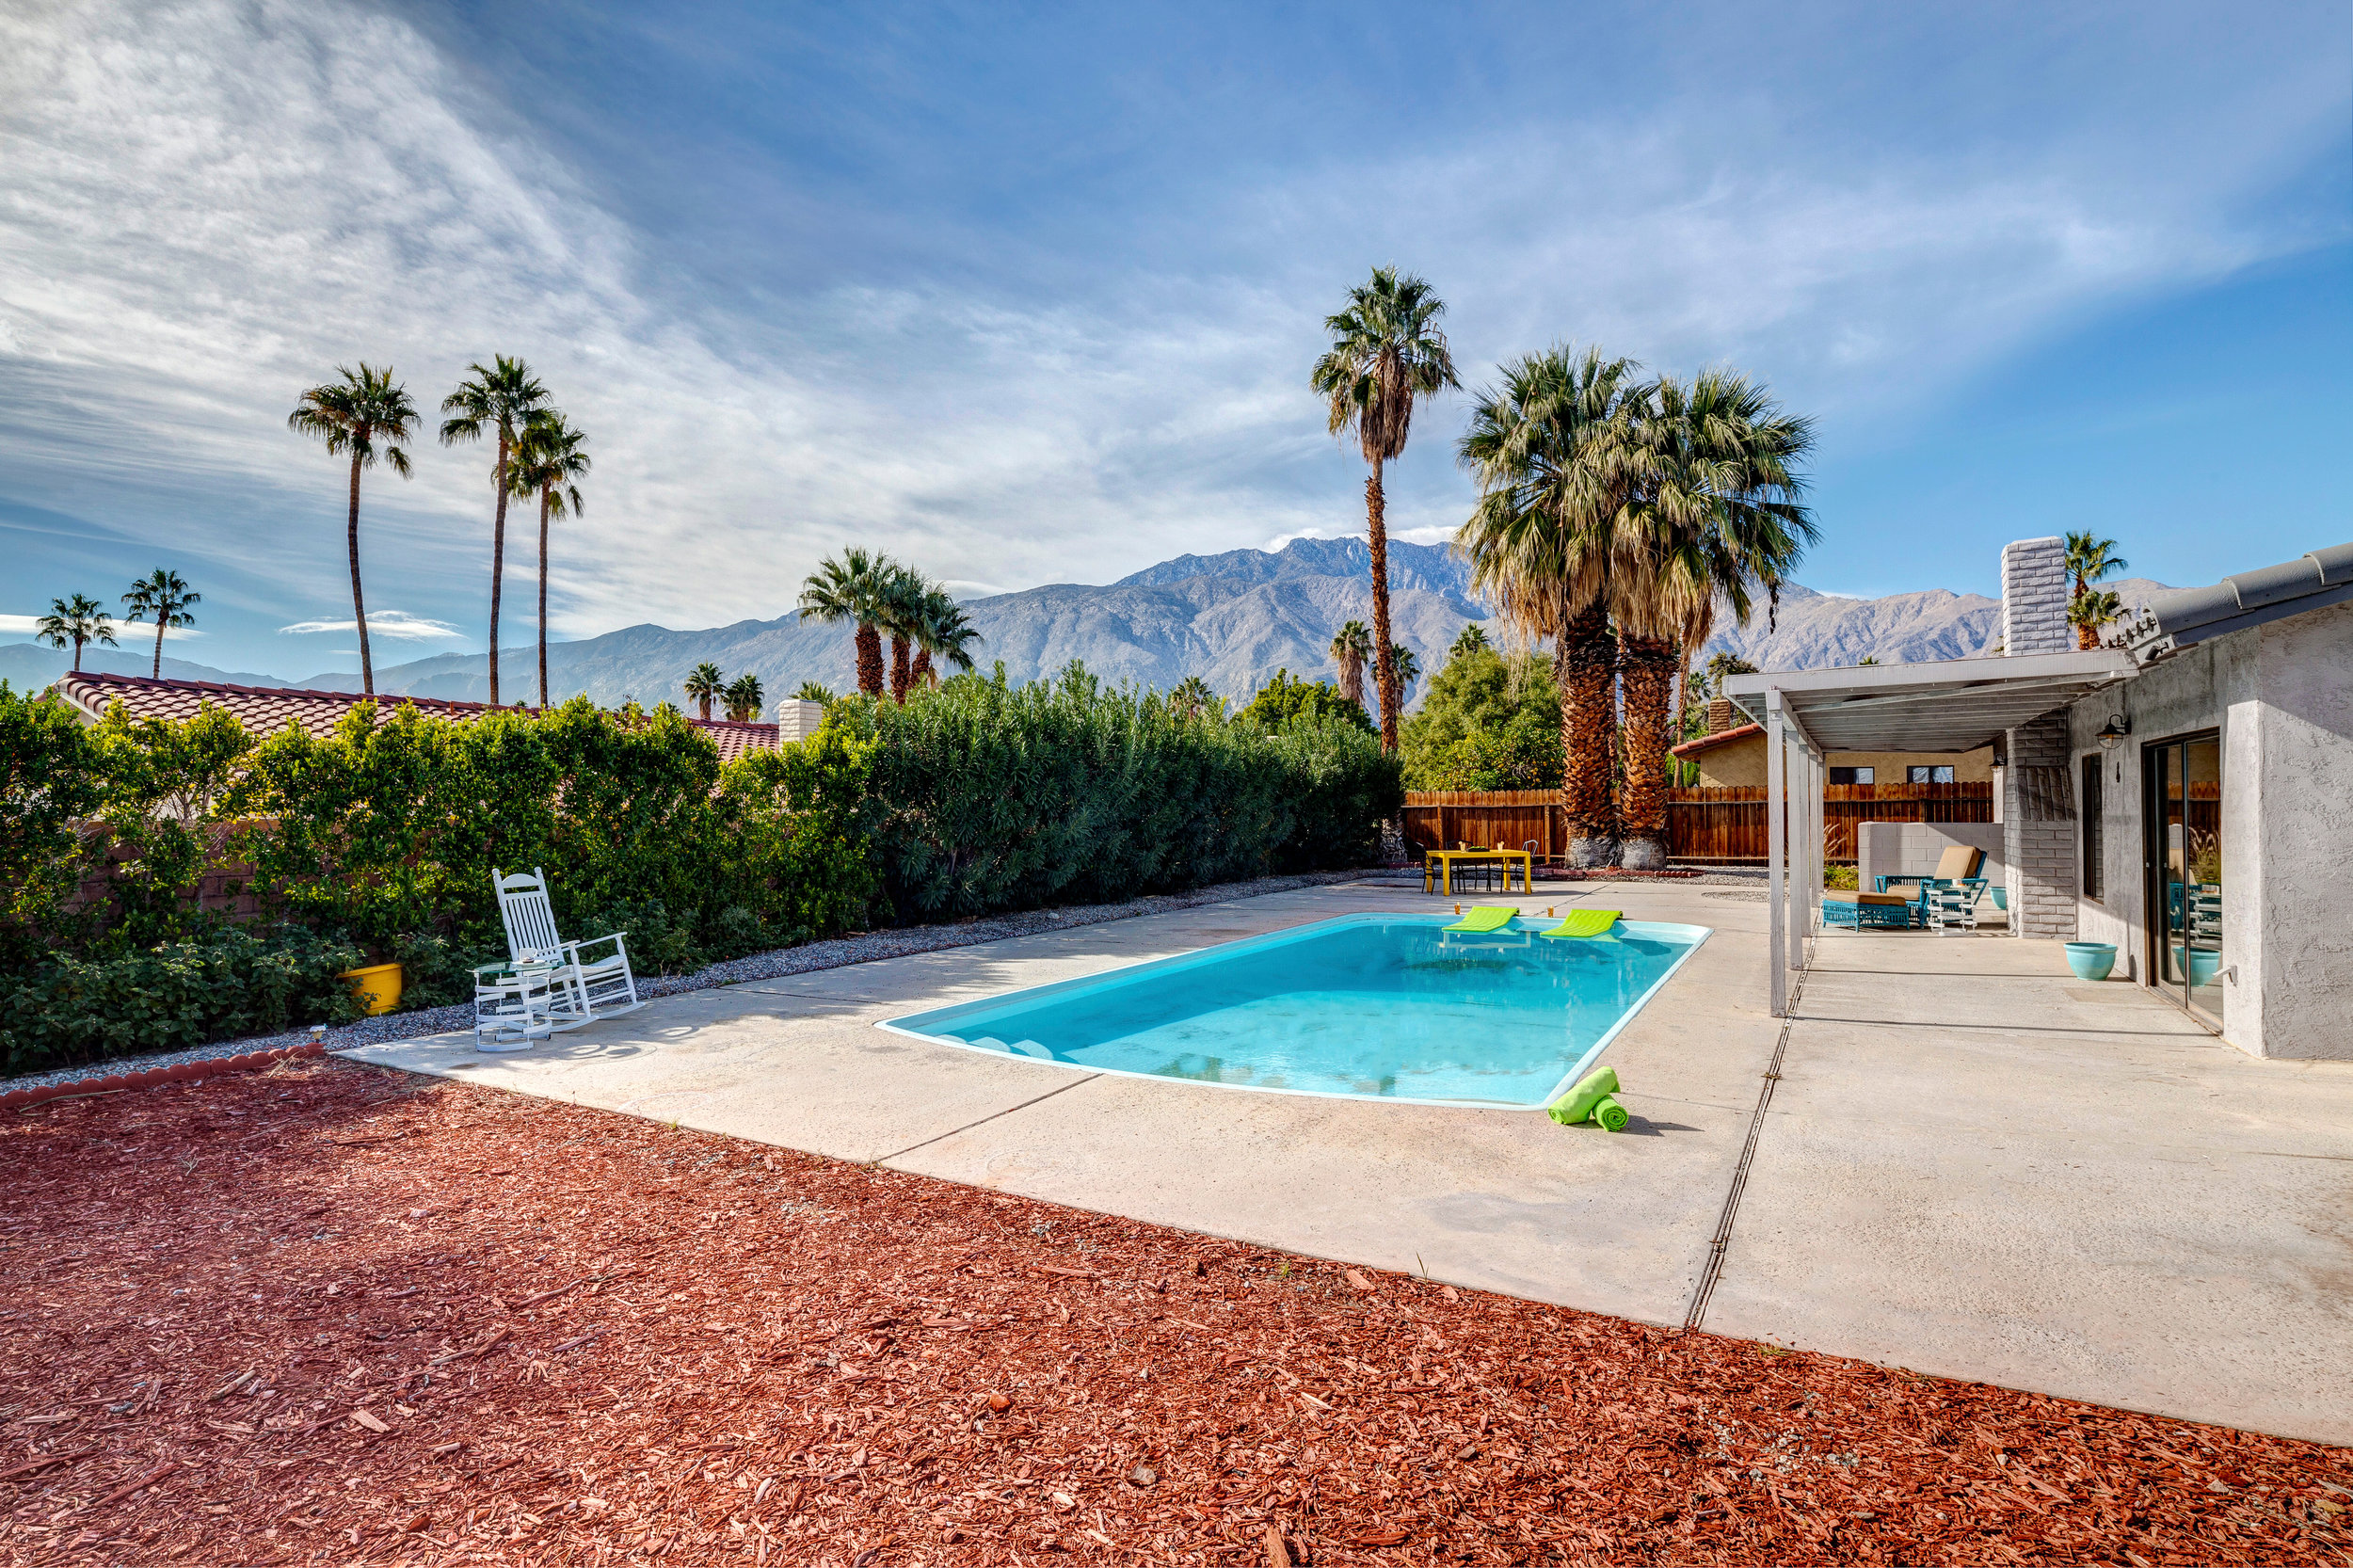 Palm Springs Fantasy Home in Victoria Park/Vista Norte, Palm Springs